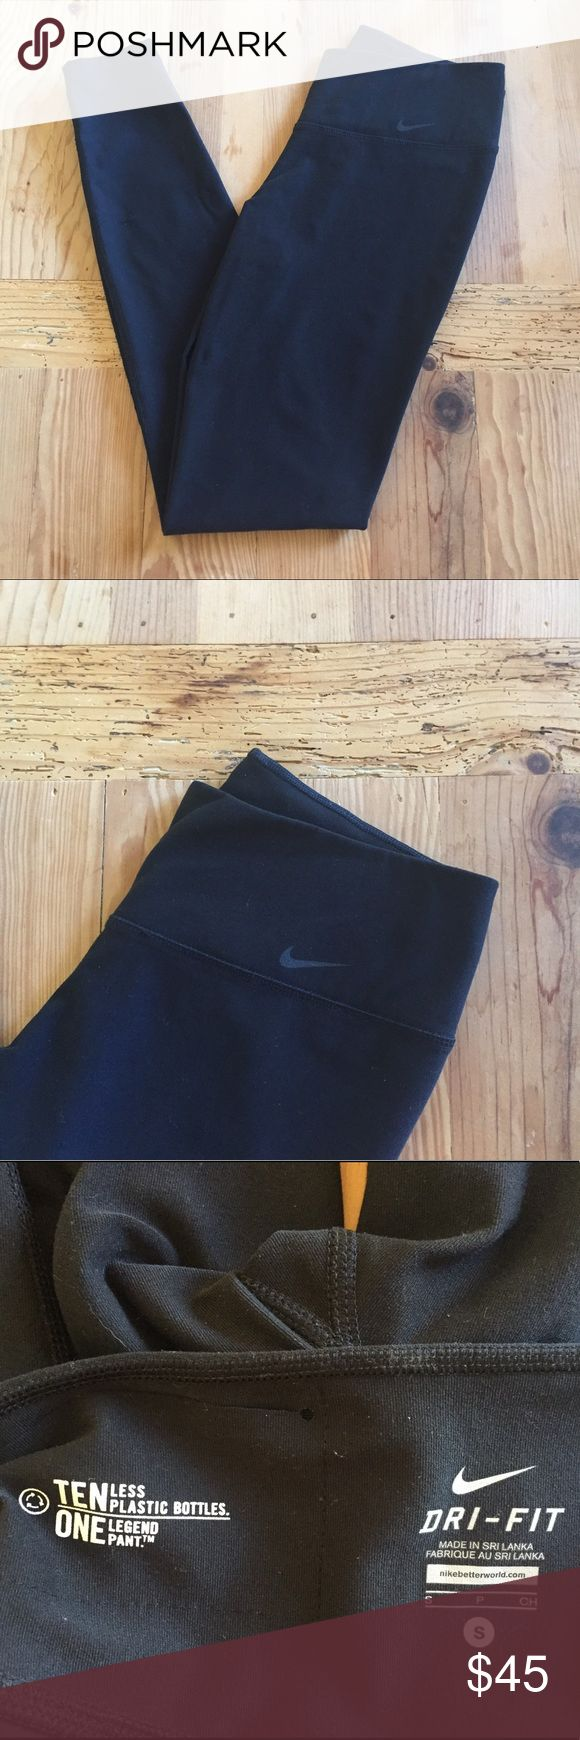 Nike Dri Fit leggings NWOT The best leggings, this pair has only been tried on, NWOT, 100% authentic bought at Nike Portland store. Size S. color is black. Full length. Nike Pants Leggings